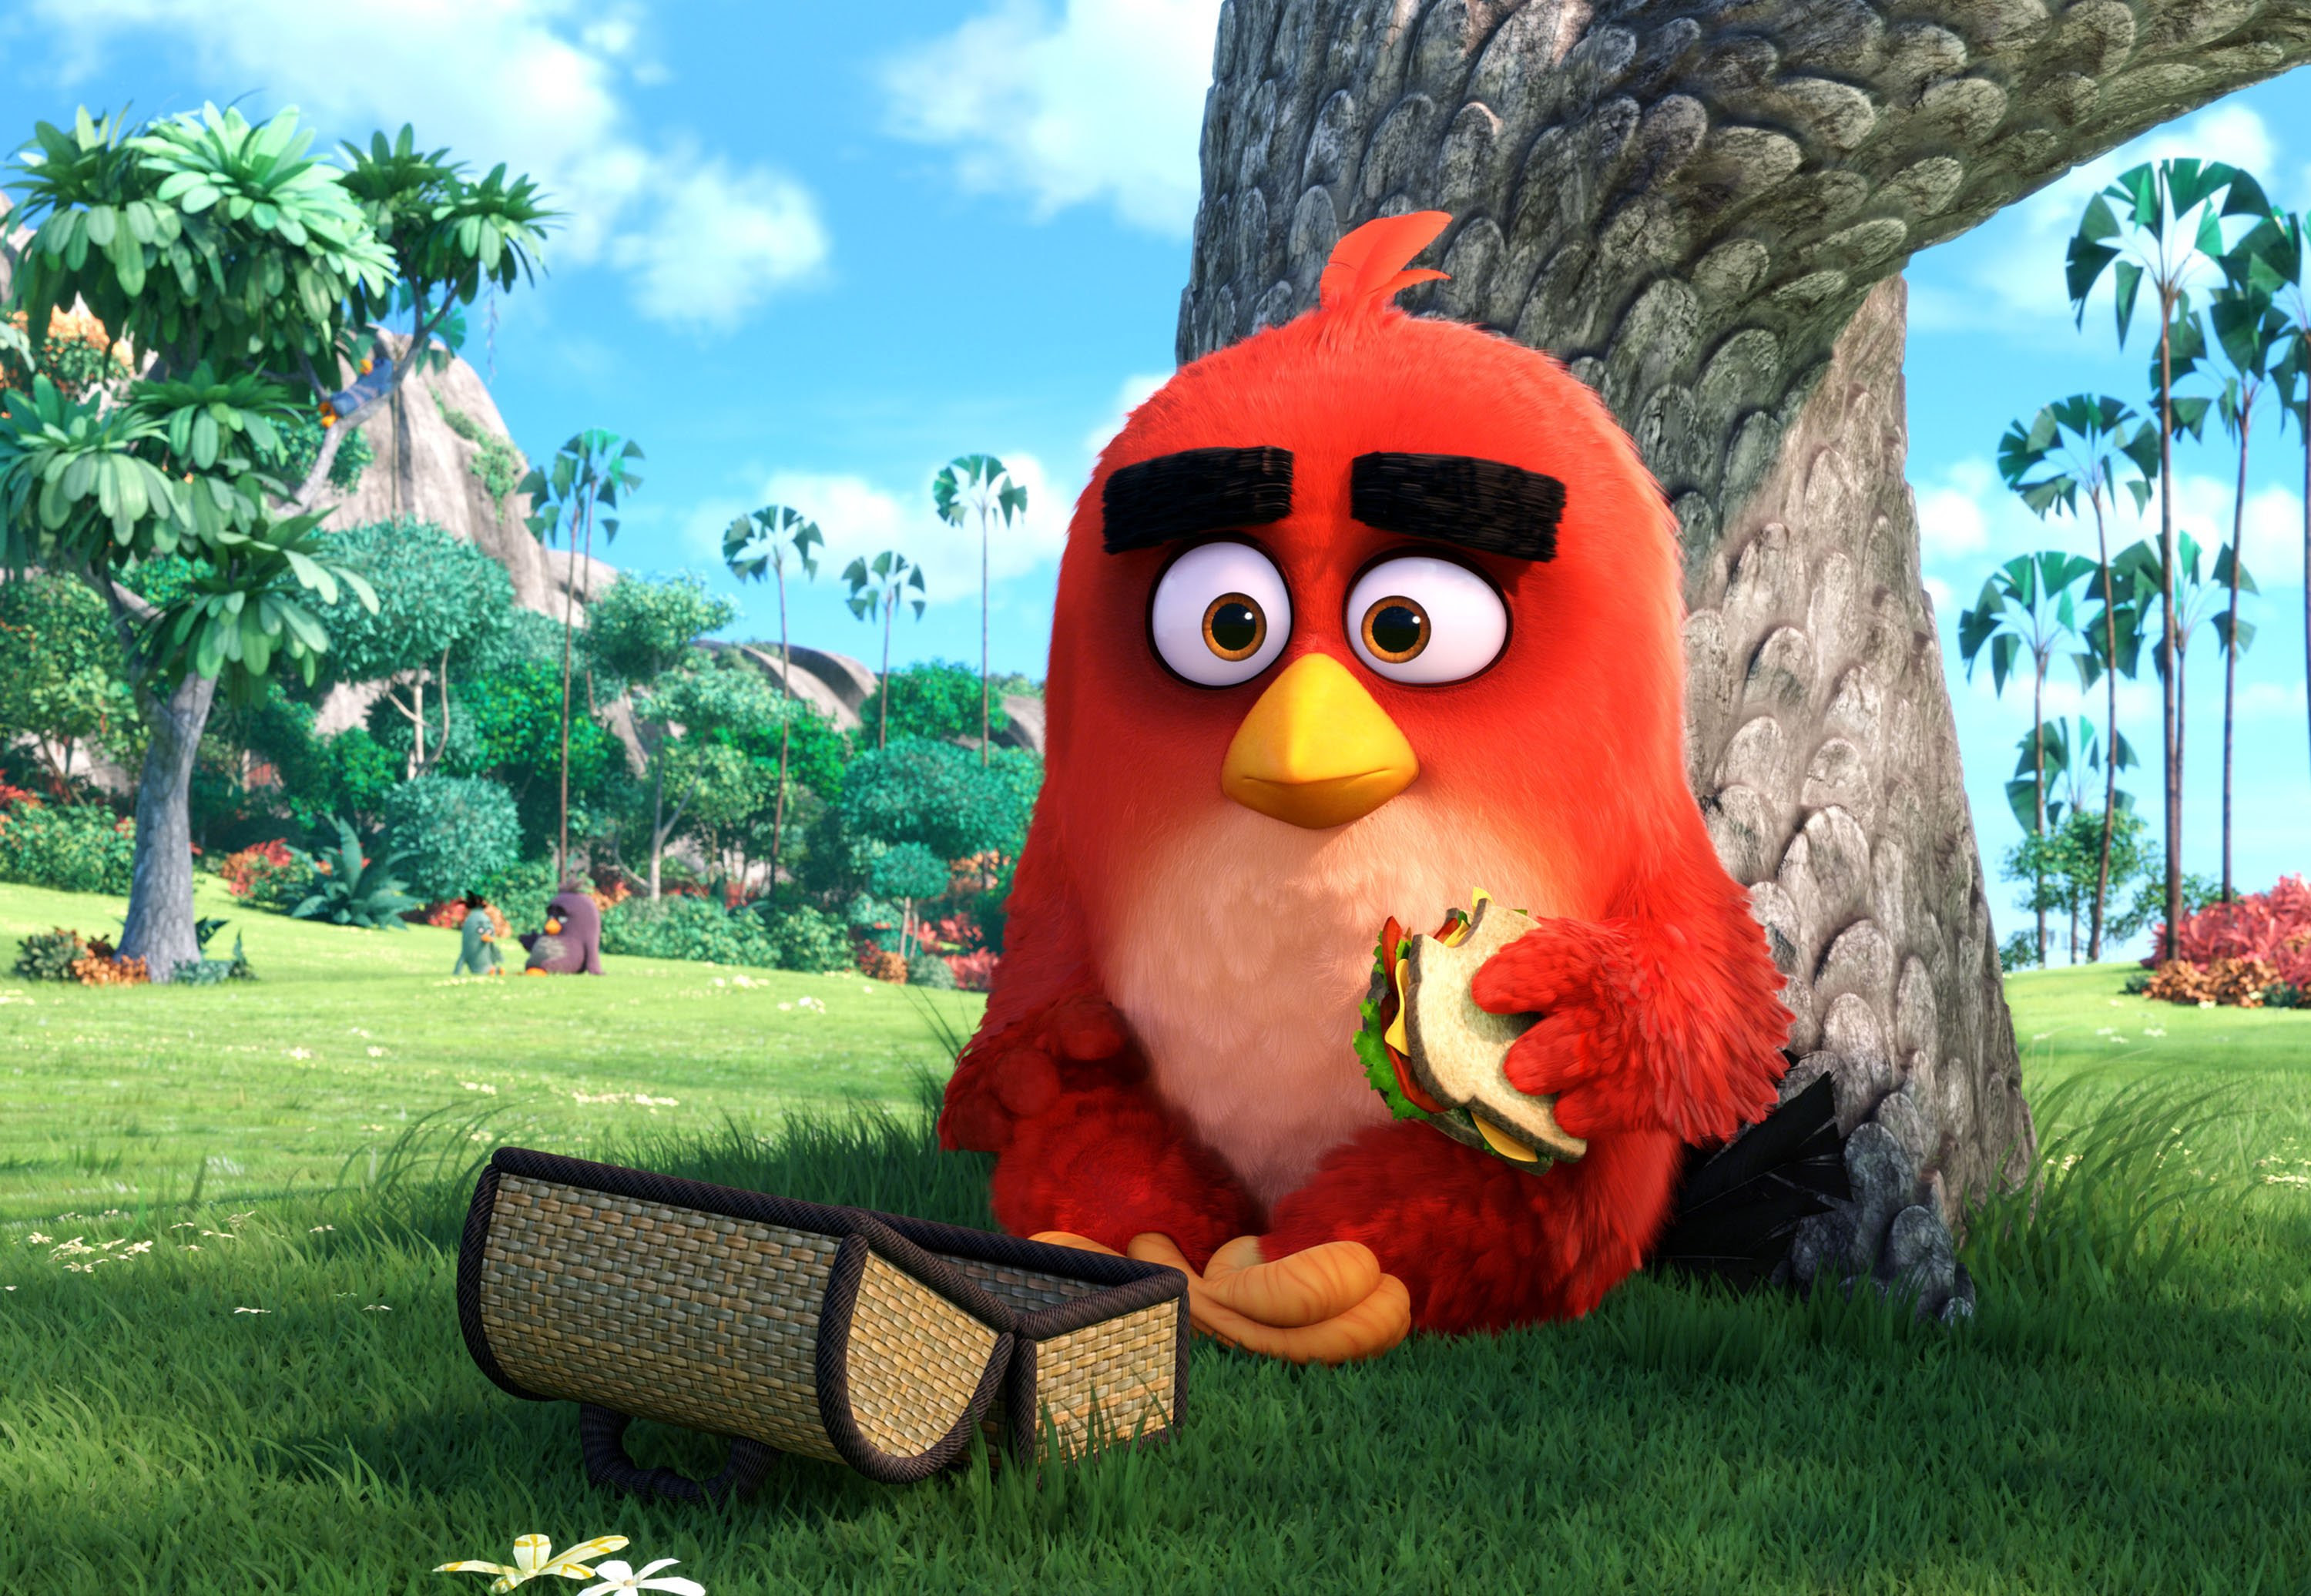 Angry Birds sequel coming to theaters in 2019 screenshot